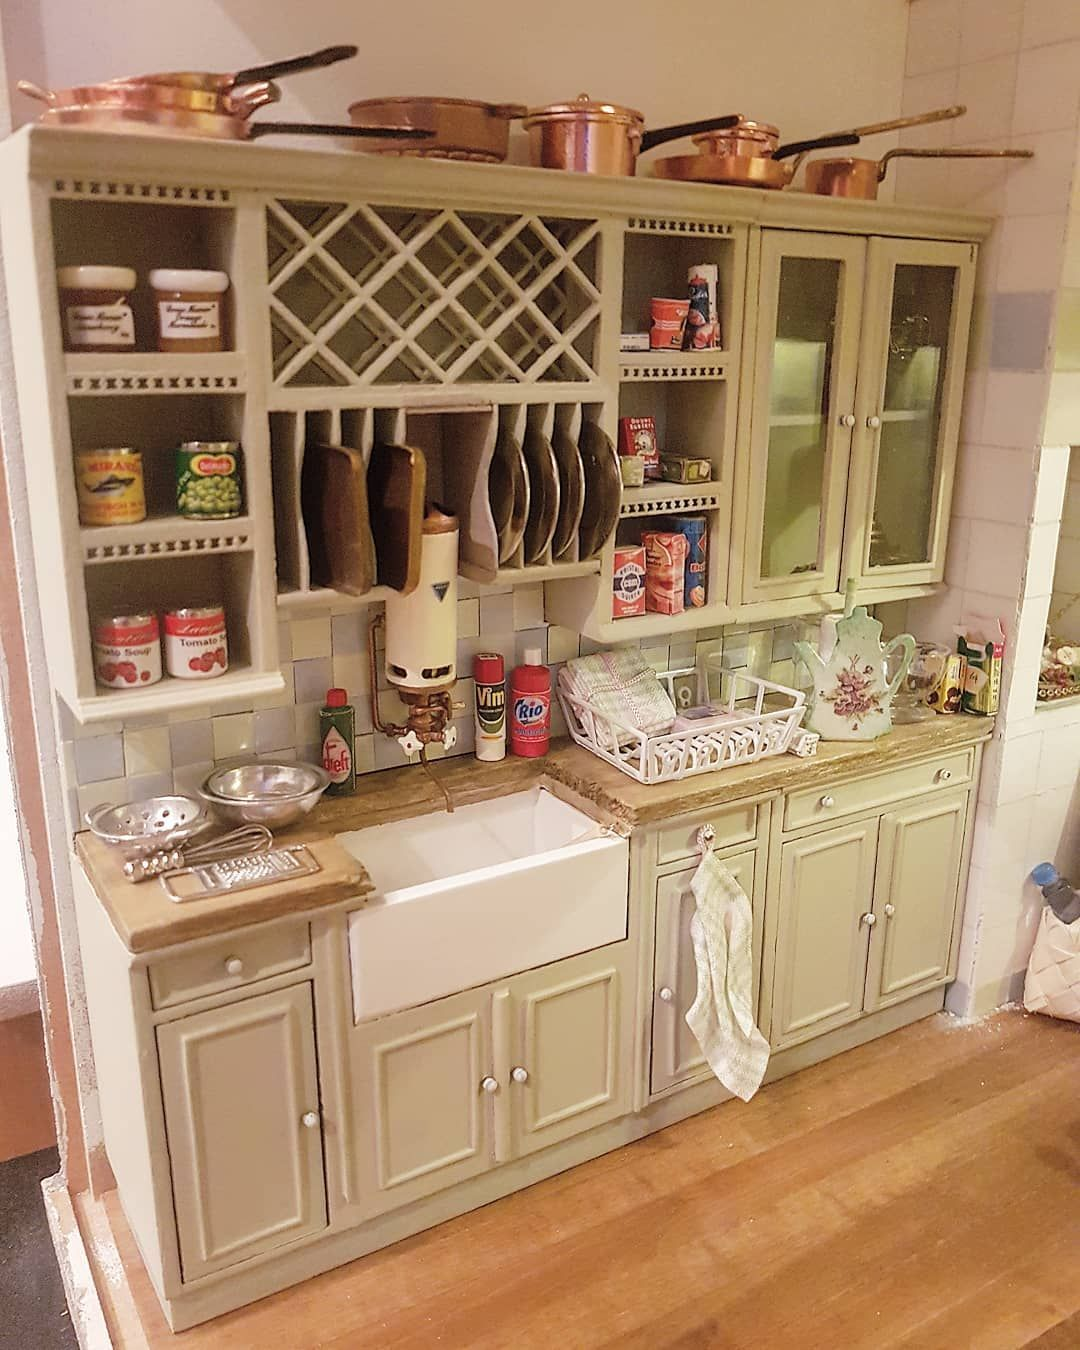 The Kitchen Counter In Maison De Paris Love How All Those Little Miniatures Found There Place Dollhouse Dollh Diy Doll Kitchen Miniature Kitchen Doll House